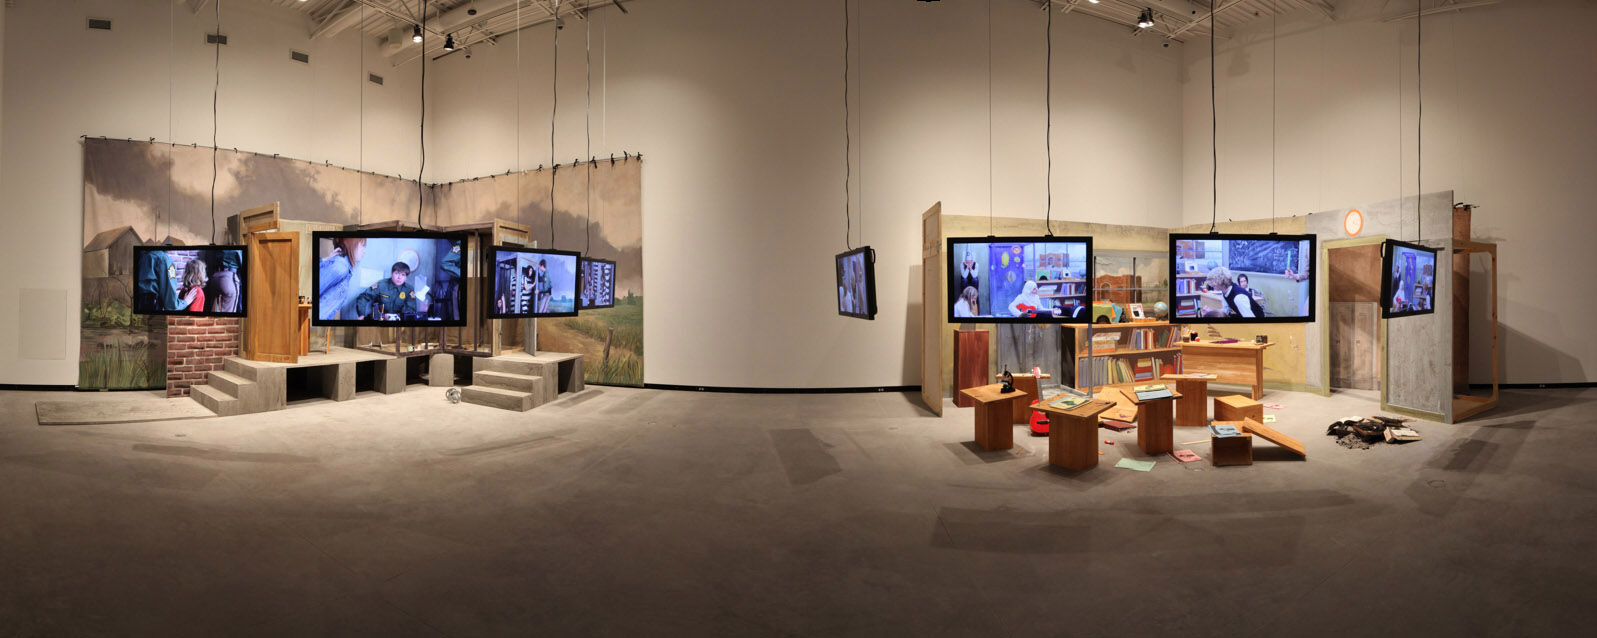 Installation view at the Judith & Norman Alix Art Gallery, 2012. Collection of Judith & Norman Alix Art Gallery, purchased with the support of the Canada Council for the Arts Acquisition Assistance program, 2012